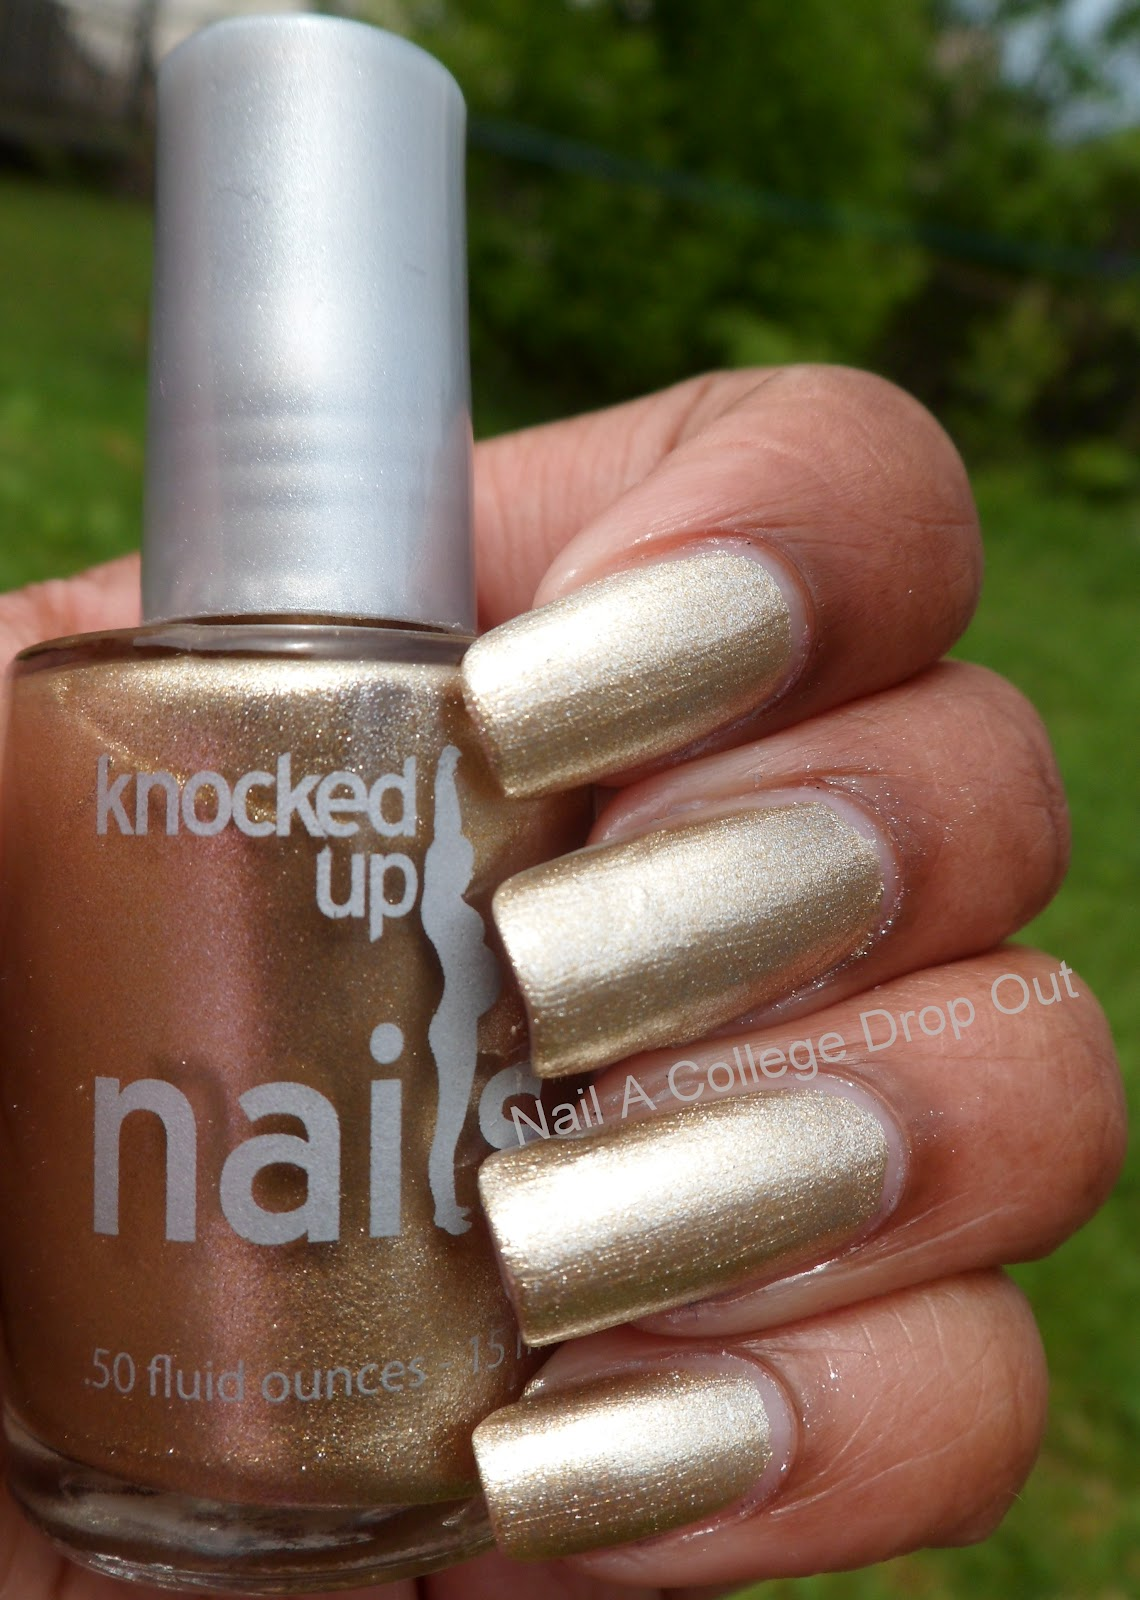 Nail A College Drop Out: Knocked Up Nails 18K Gold Crown(ing)